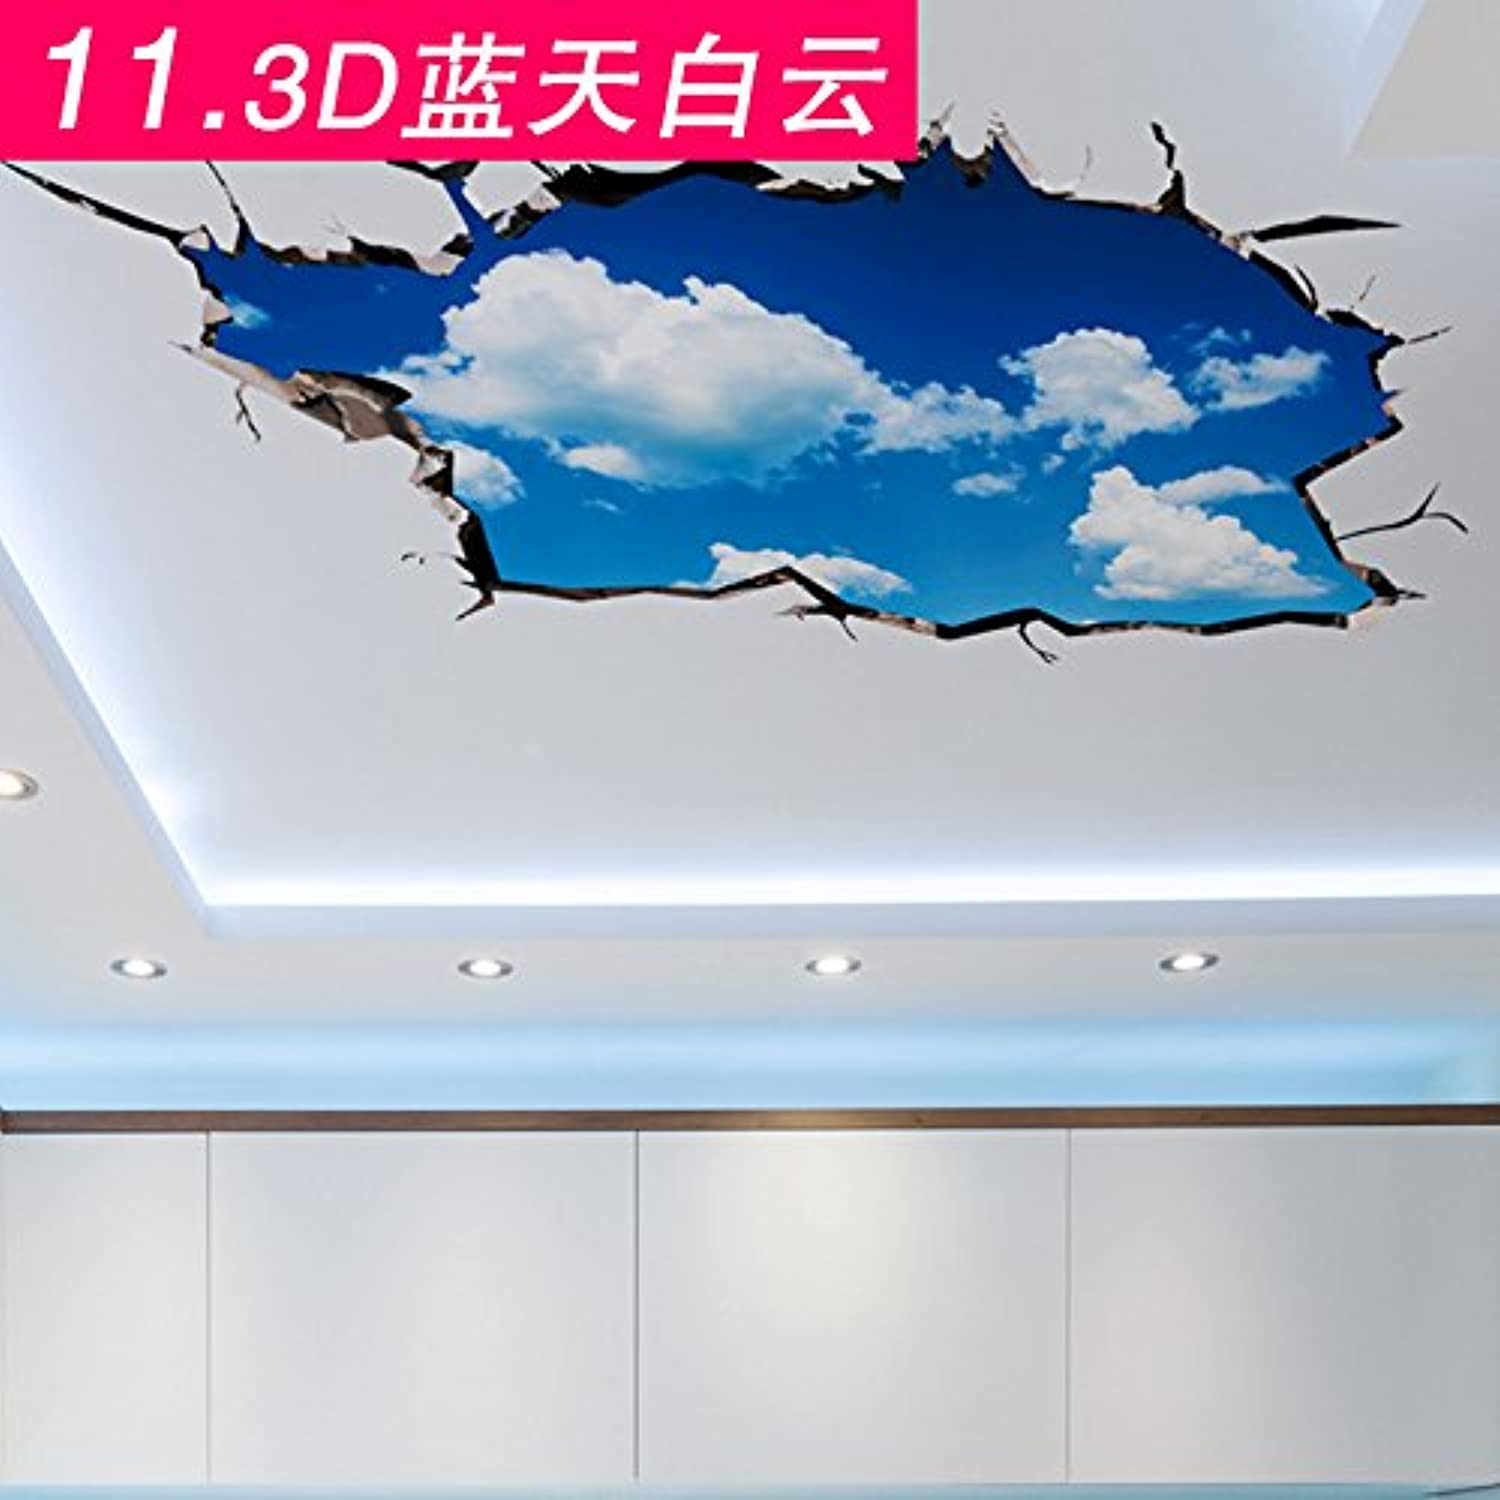 Znzbzt Bathrooms are Decorated Floor Sticker Wall Art Tile Waterproof wear Wall Mount, White Clouds in bluee Sky